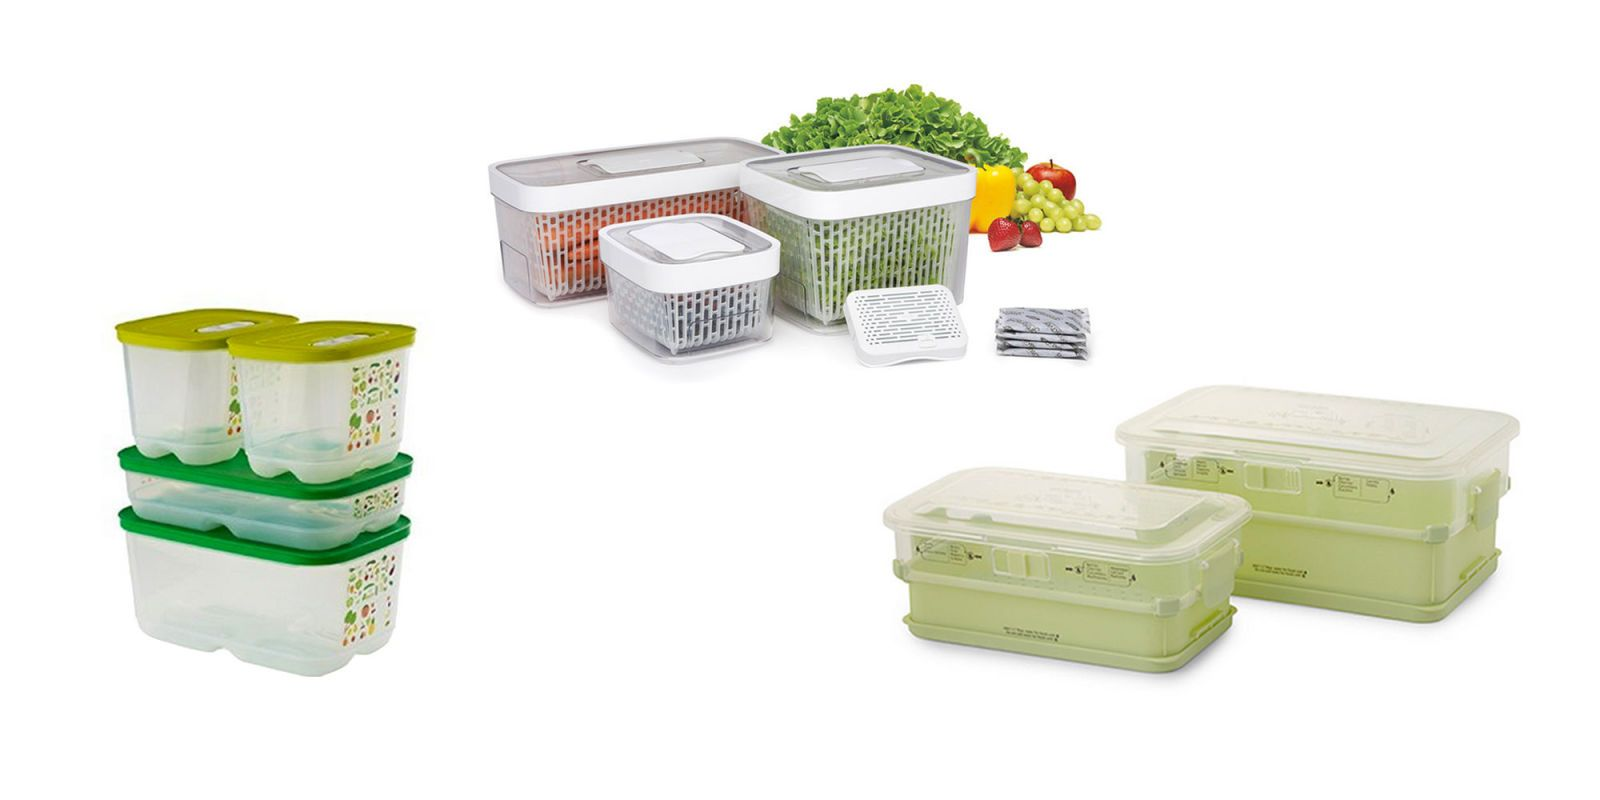 Food Storage Container Reviews  sc 1 st  Good Housekeeping & Food Storage Container Reviews - Best Food Storage Containers